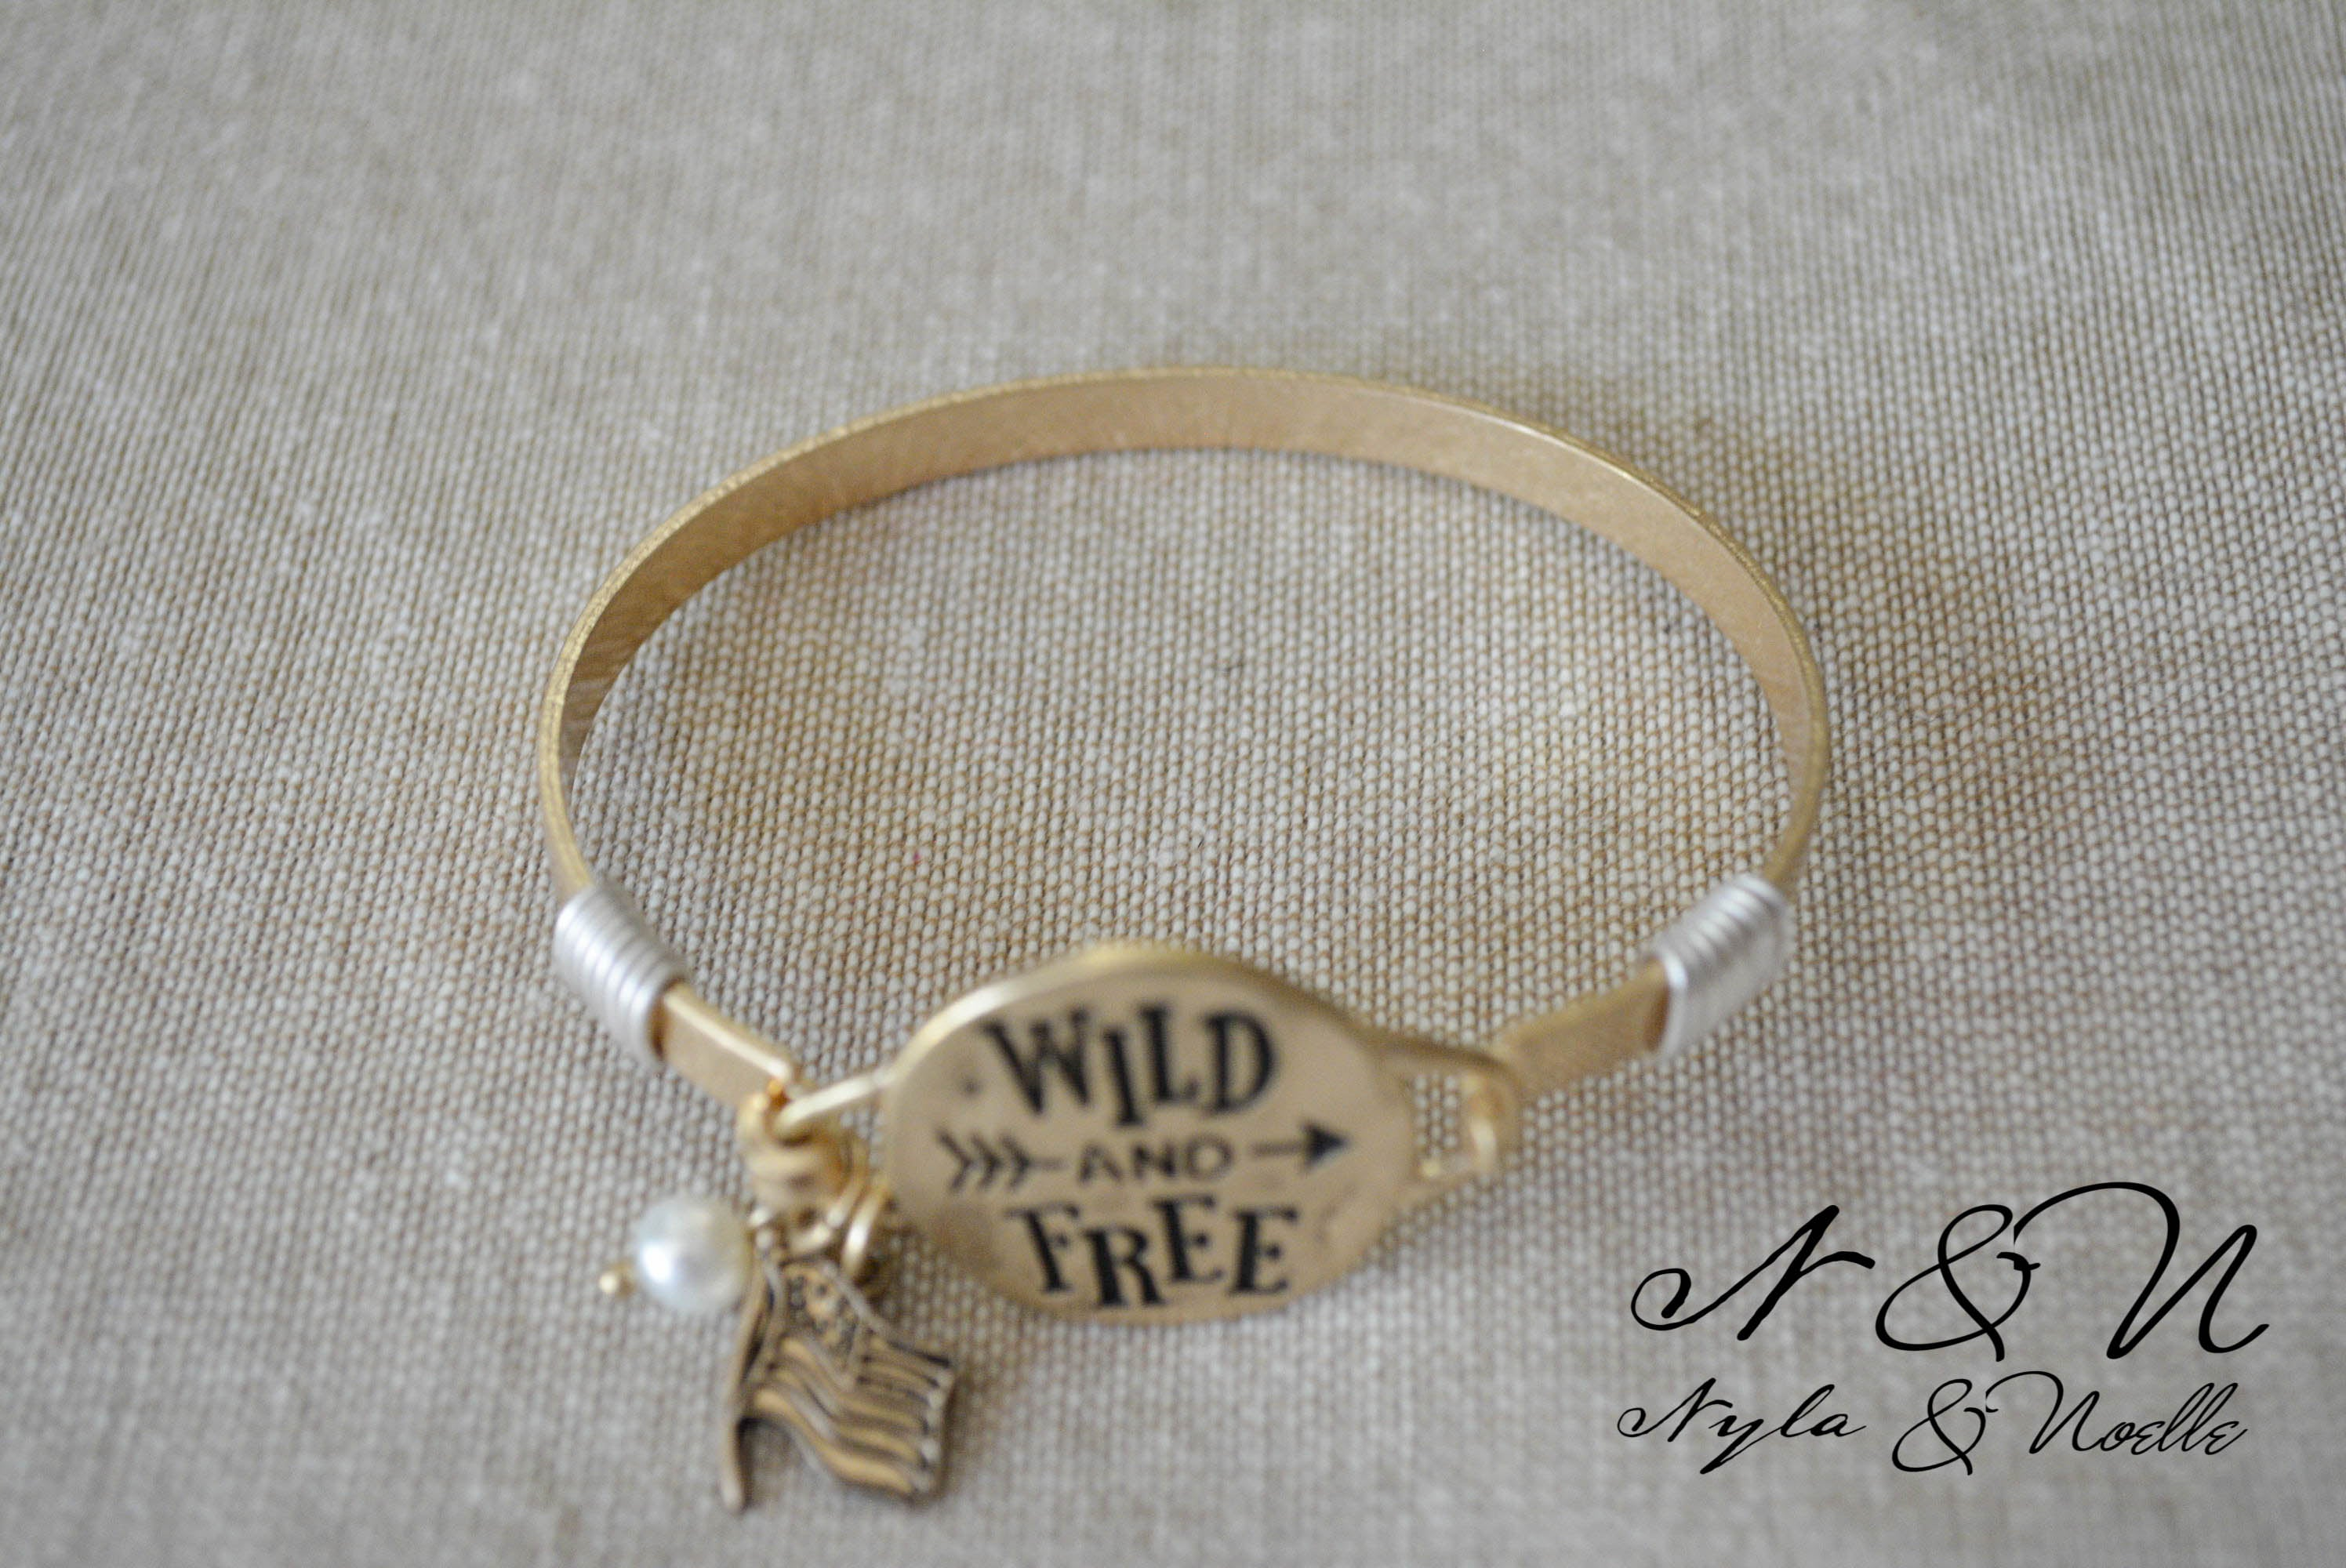 Wild and Free - Antique Gold Tone Bangle